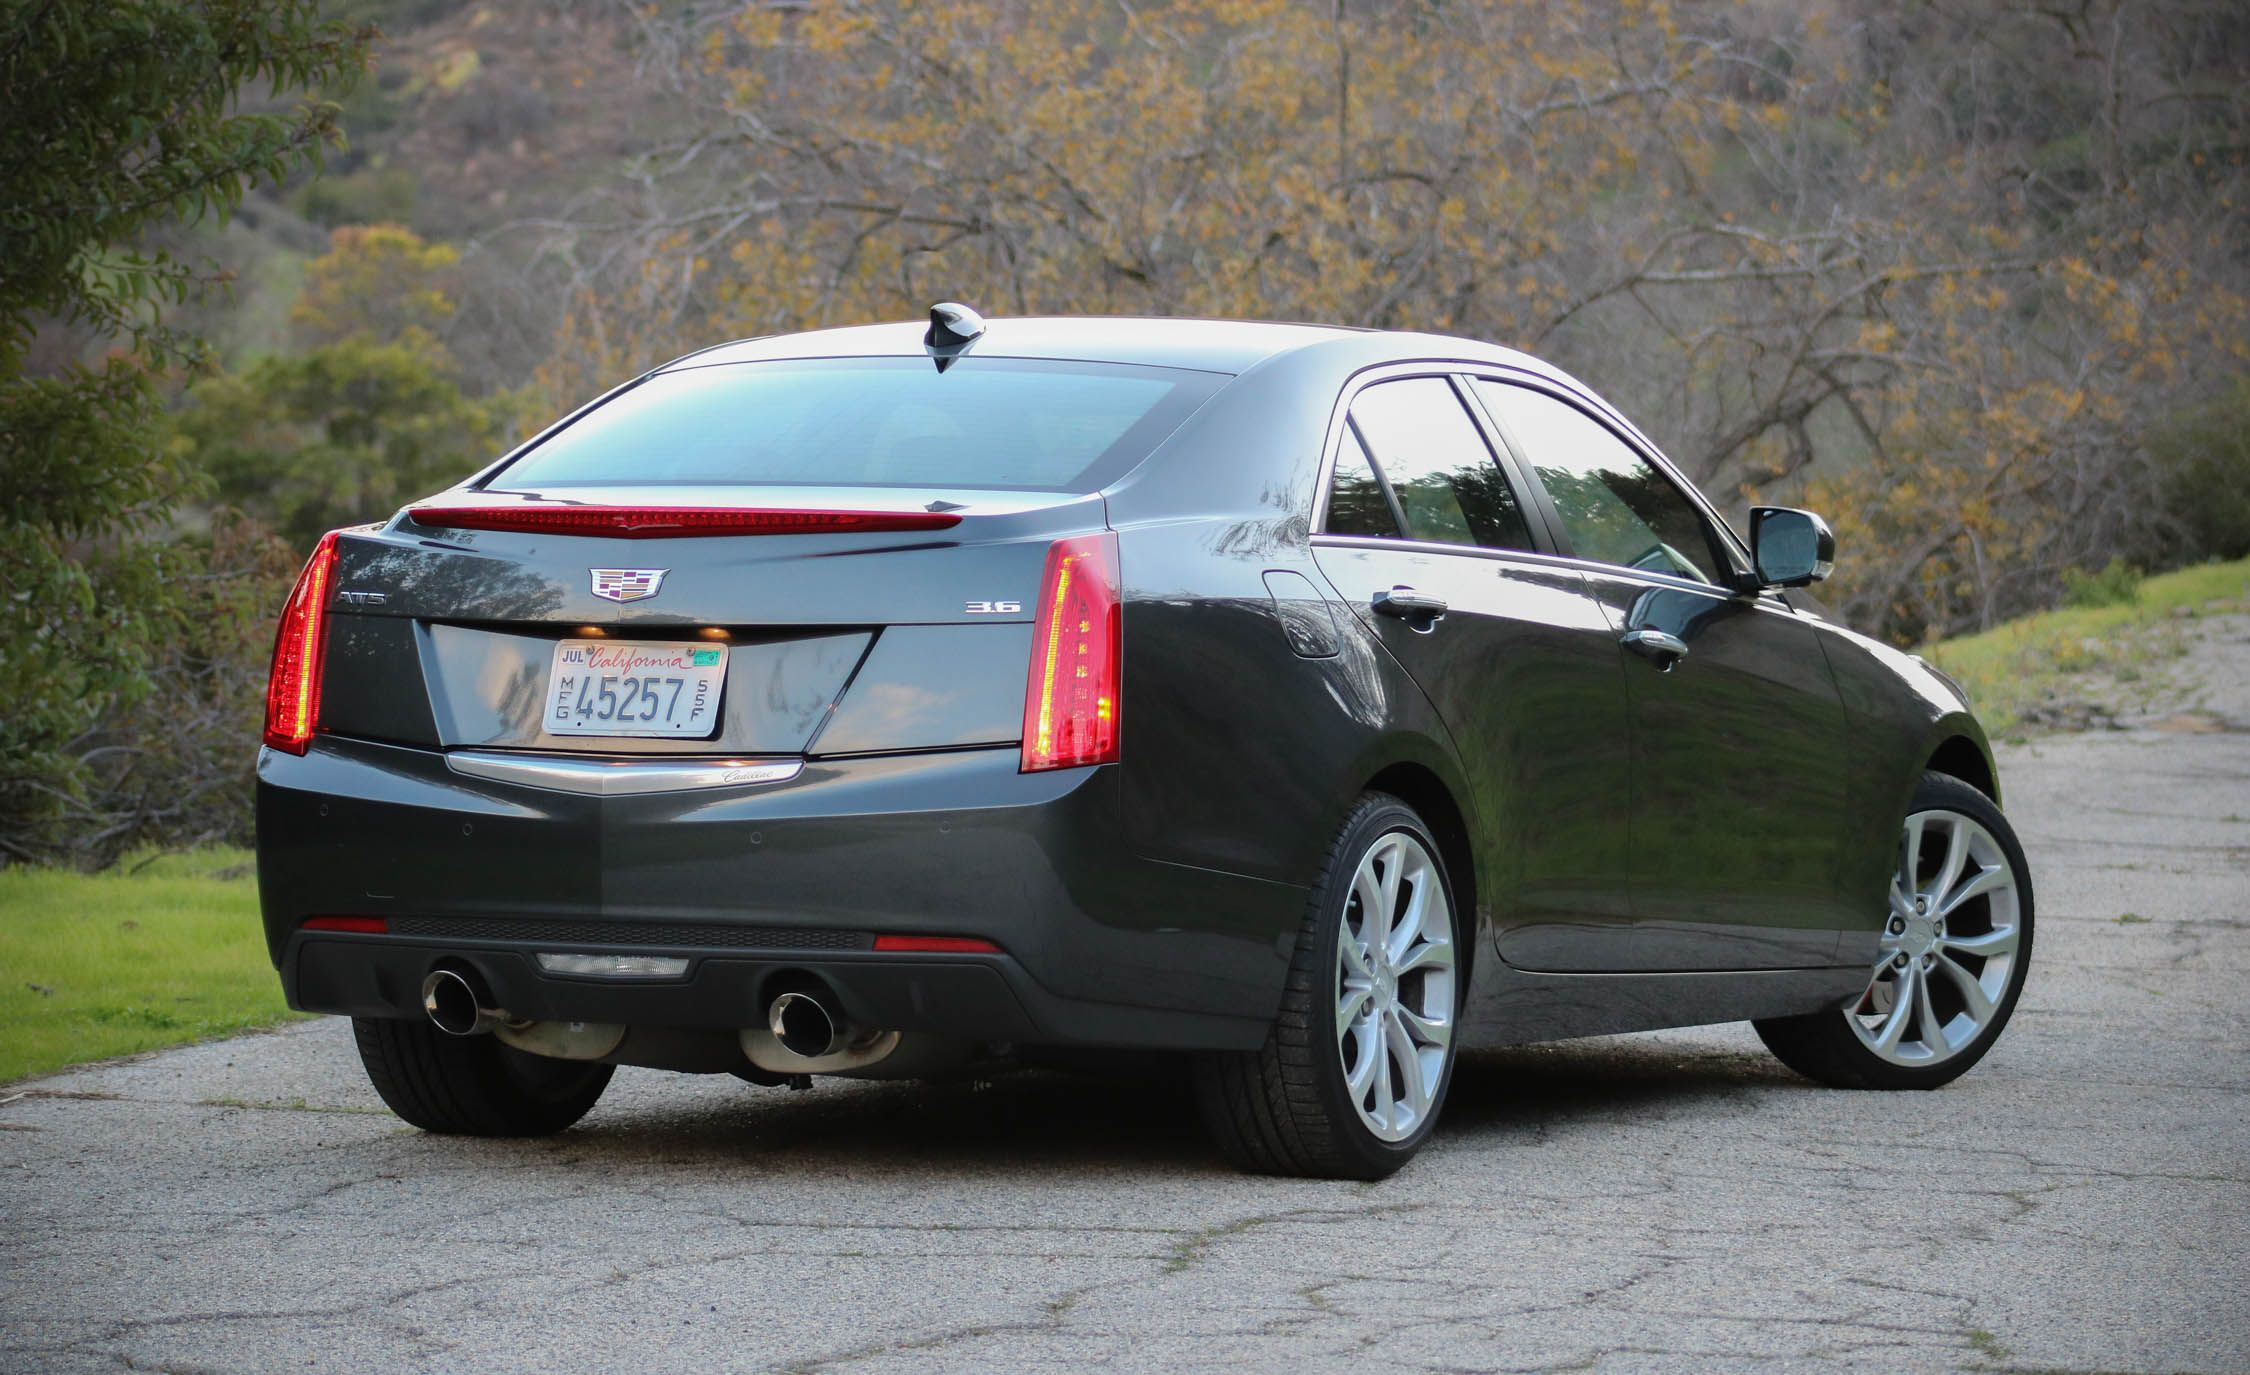 Cadillac ATS Reviews | Cadillac ATS Price, Photos, and Specs | Car